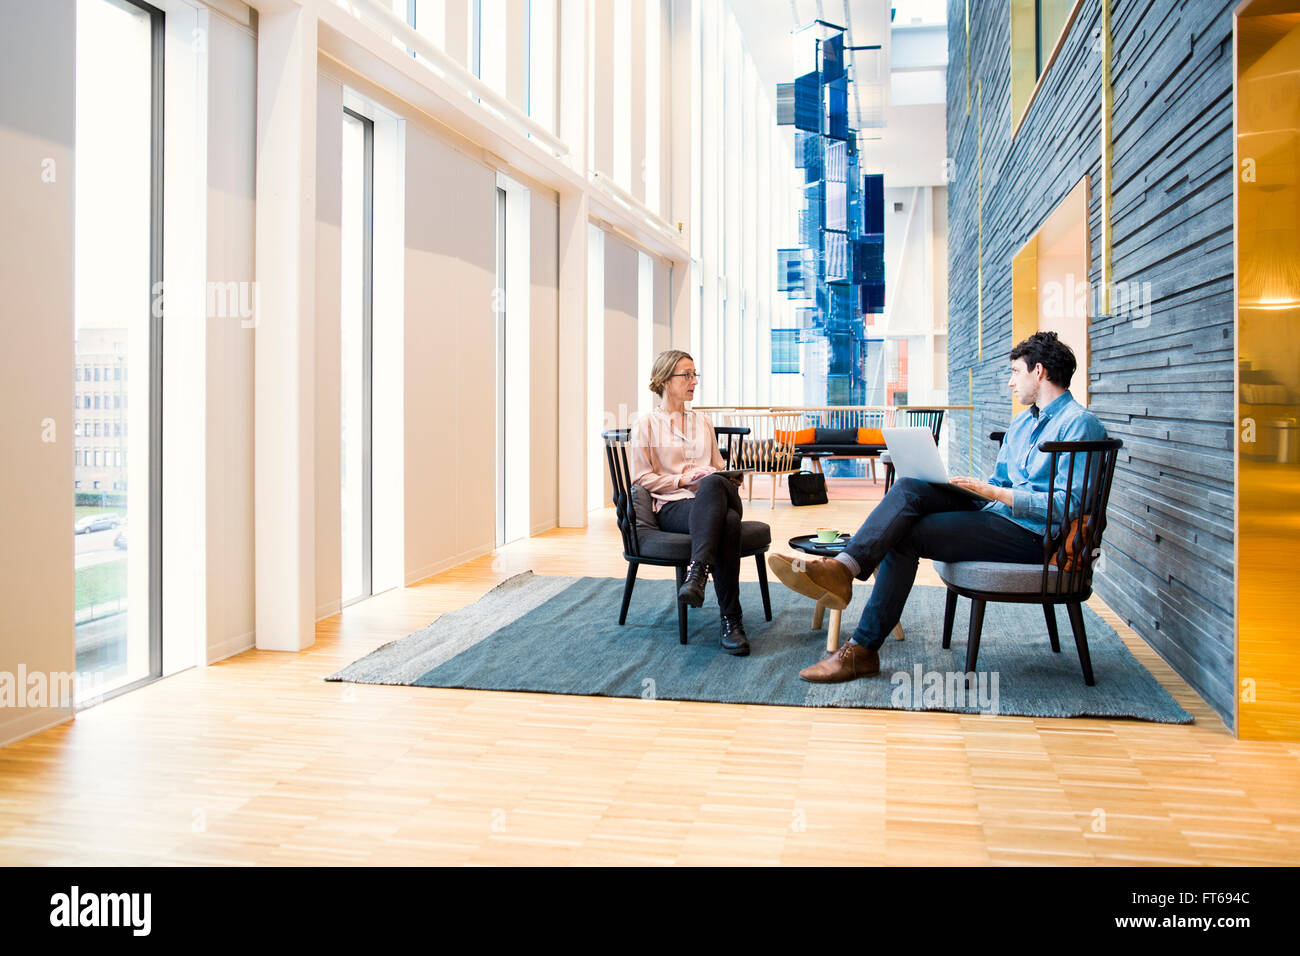 Full length of business people discussing in meeting at hotel lobby - Stock Image